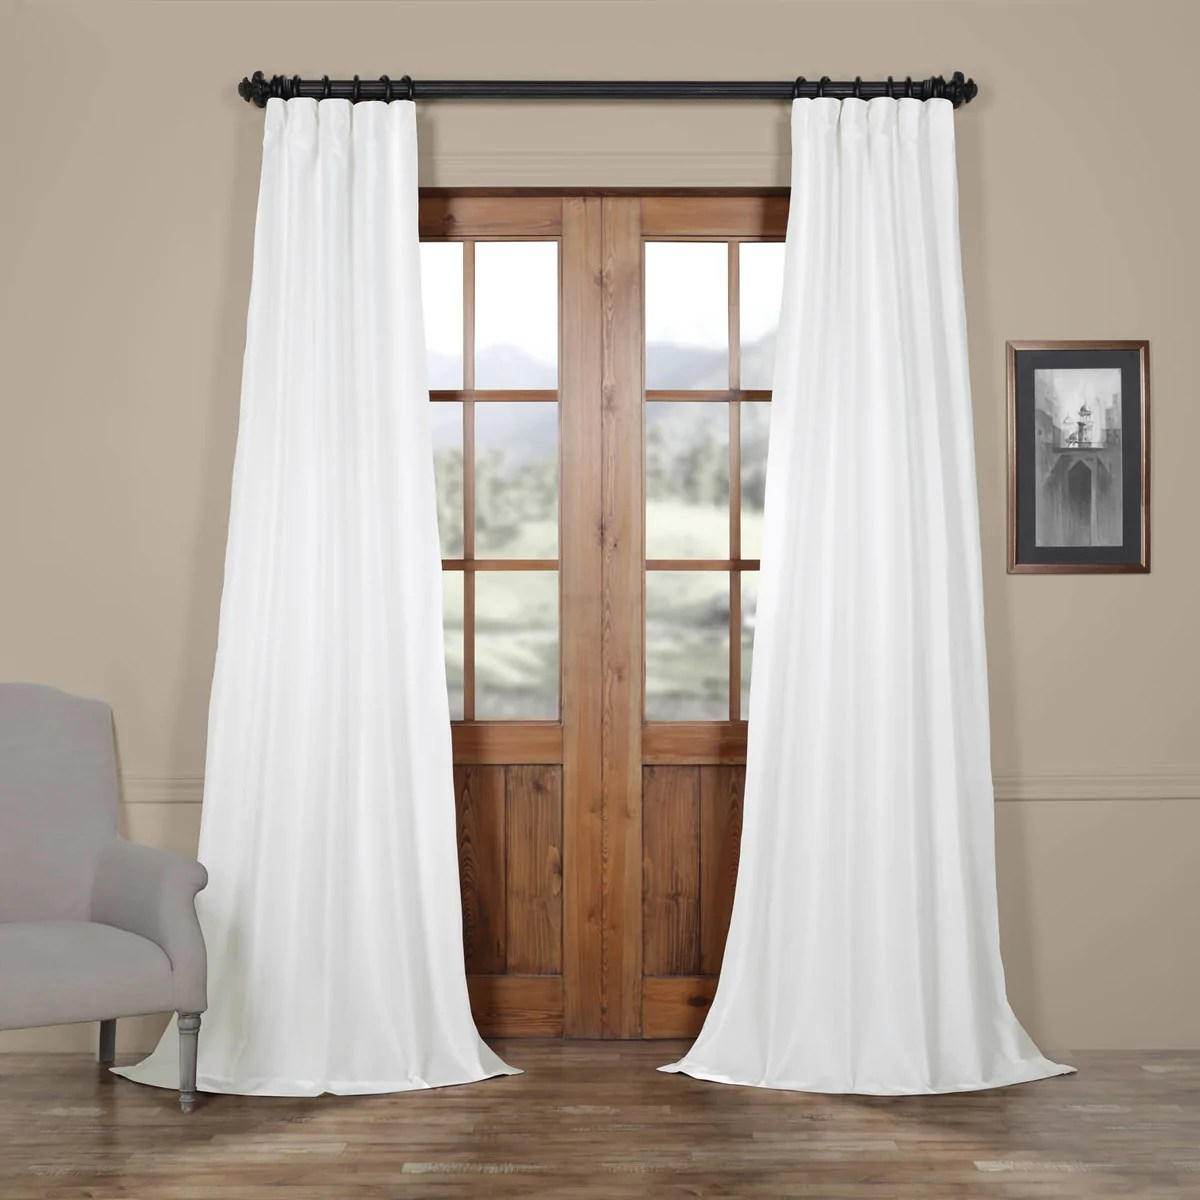 Faux Silk Curtains Faux Silk Taffeta Curtains Dupioni Silk Curtain Panels Lined 54